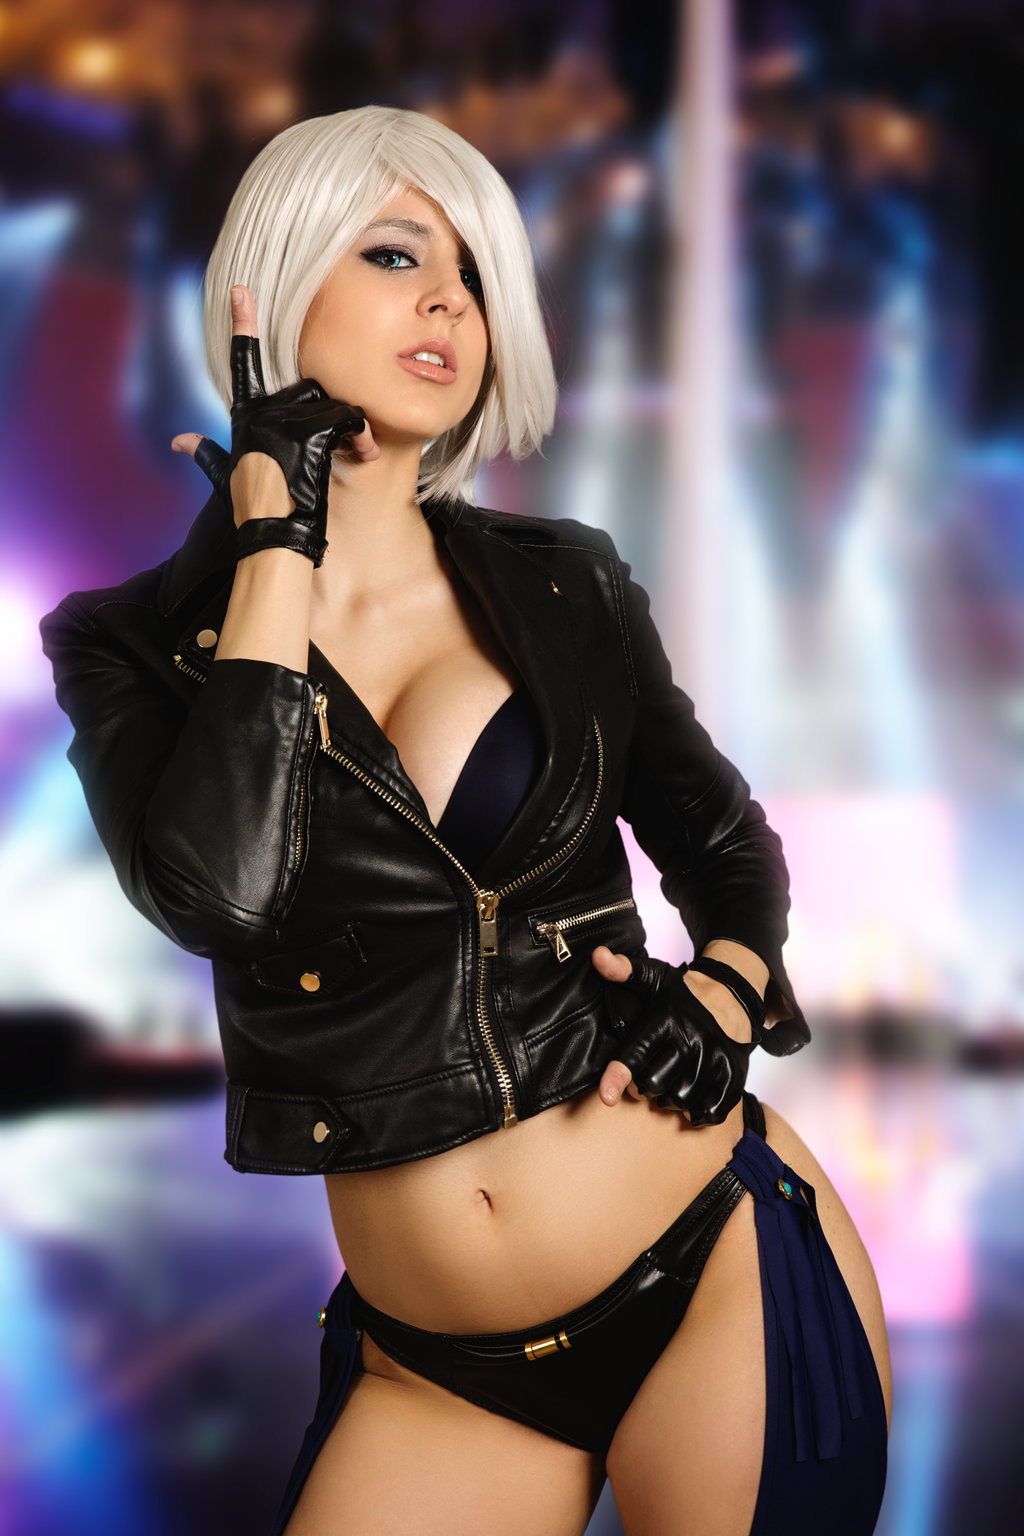 Angel king of fighters cosplay